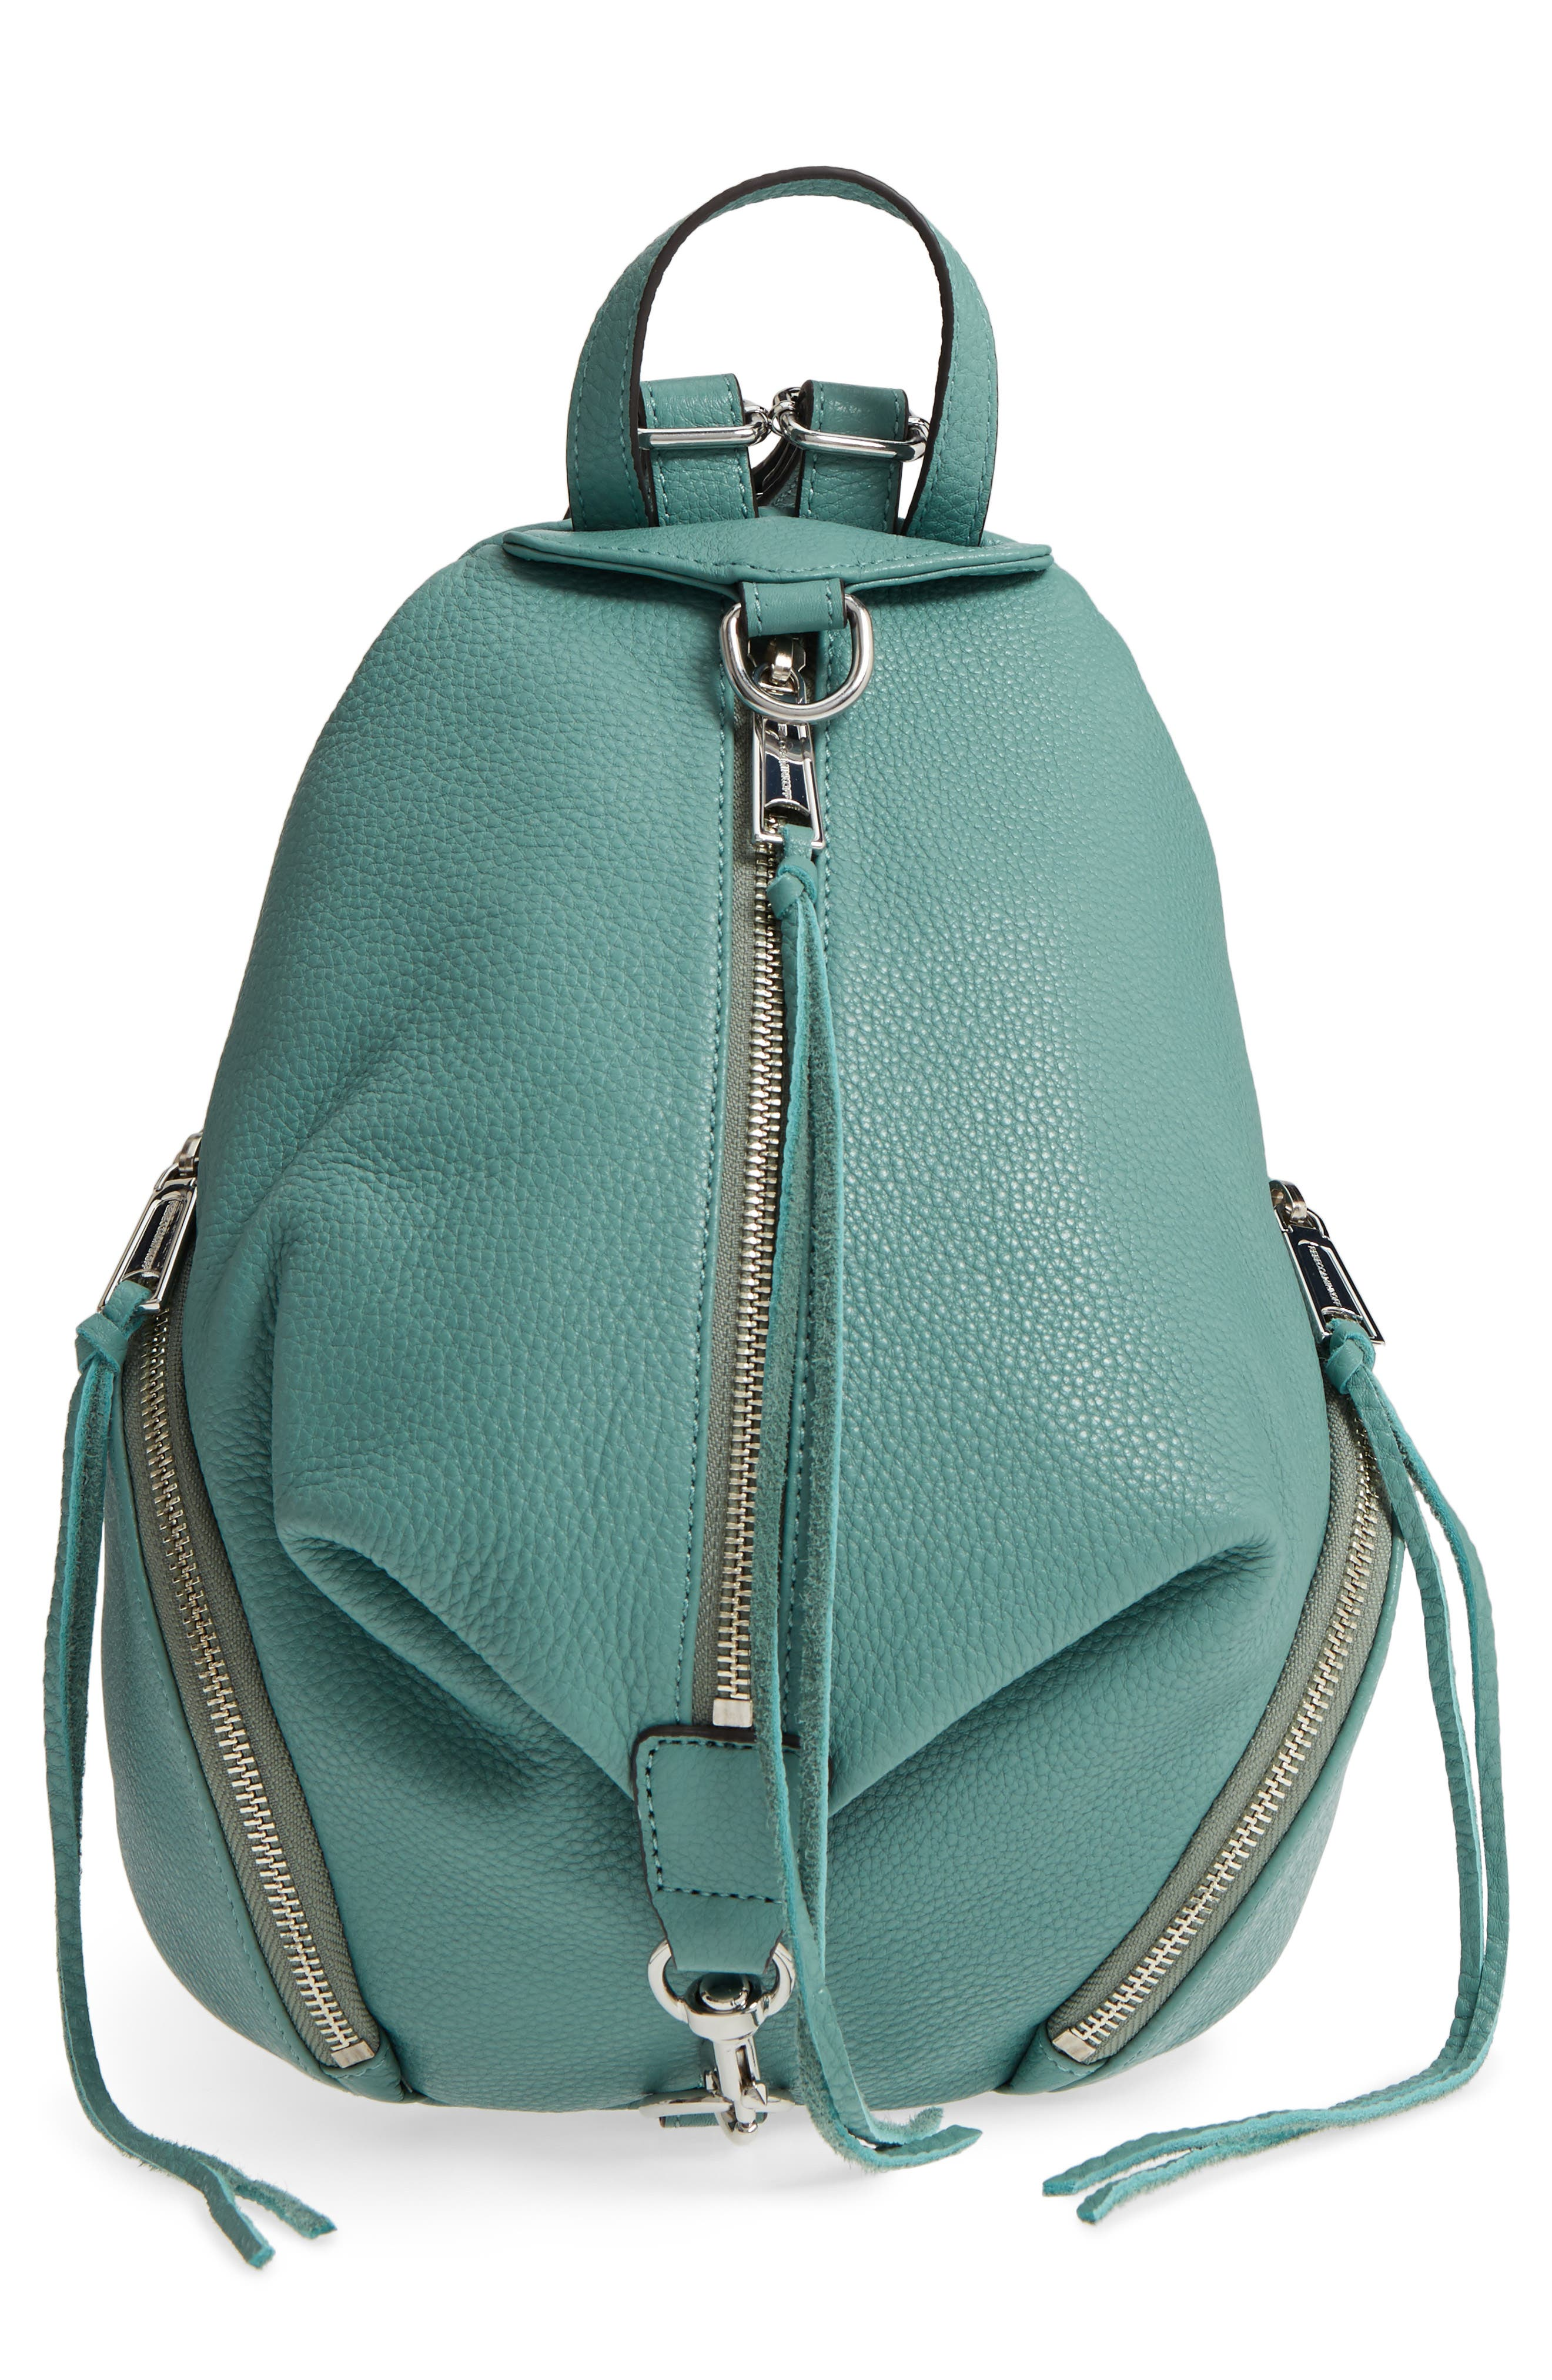 Medium Julian Backpack,                             Main thumbnail 1, color,                             332